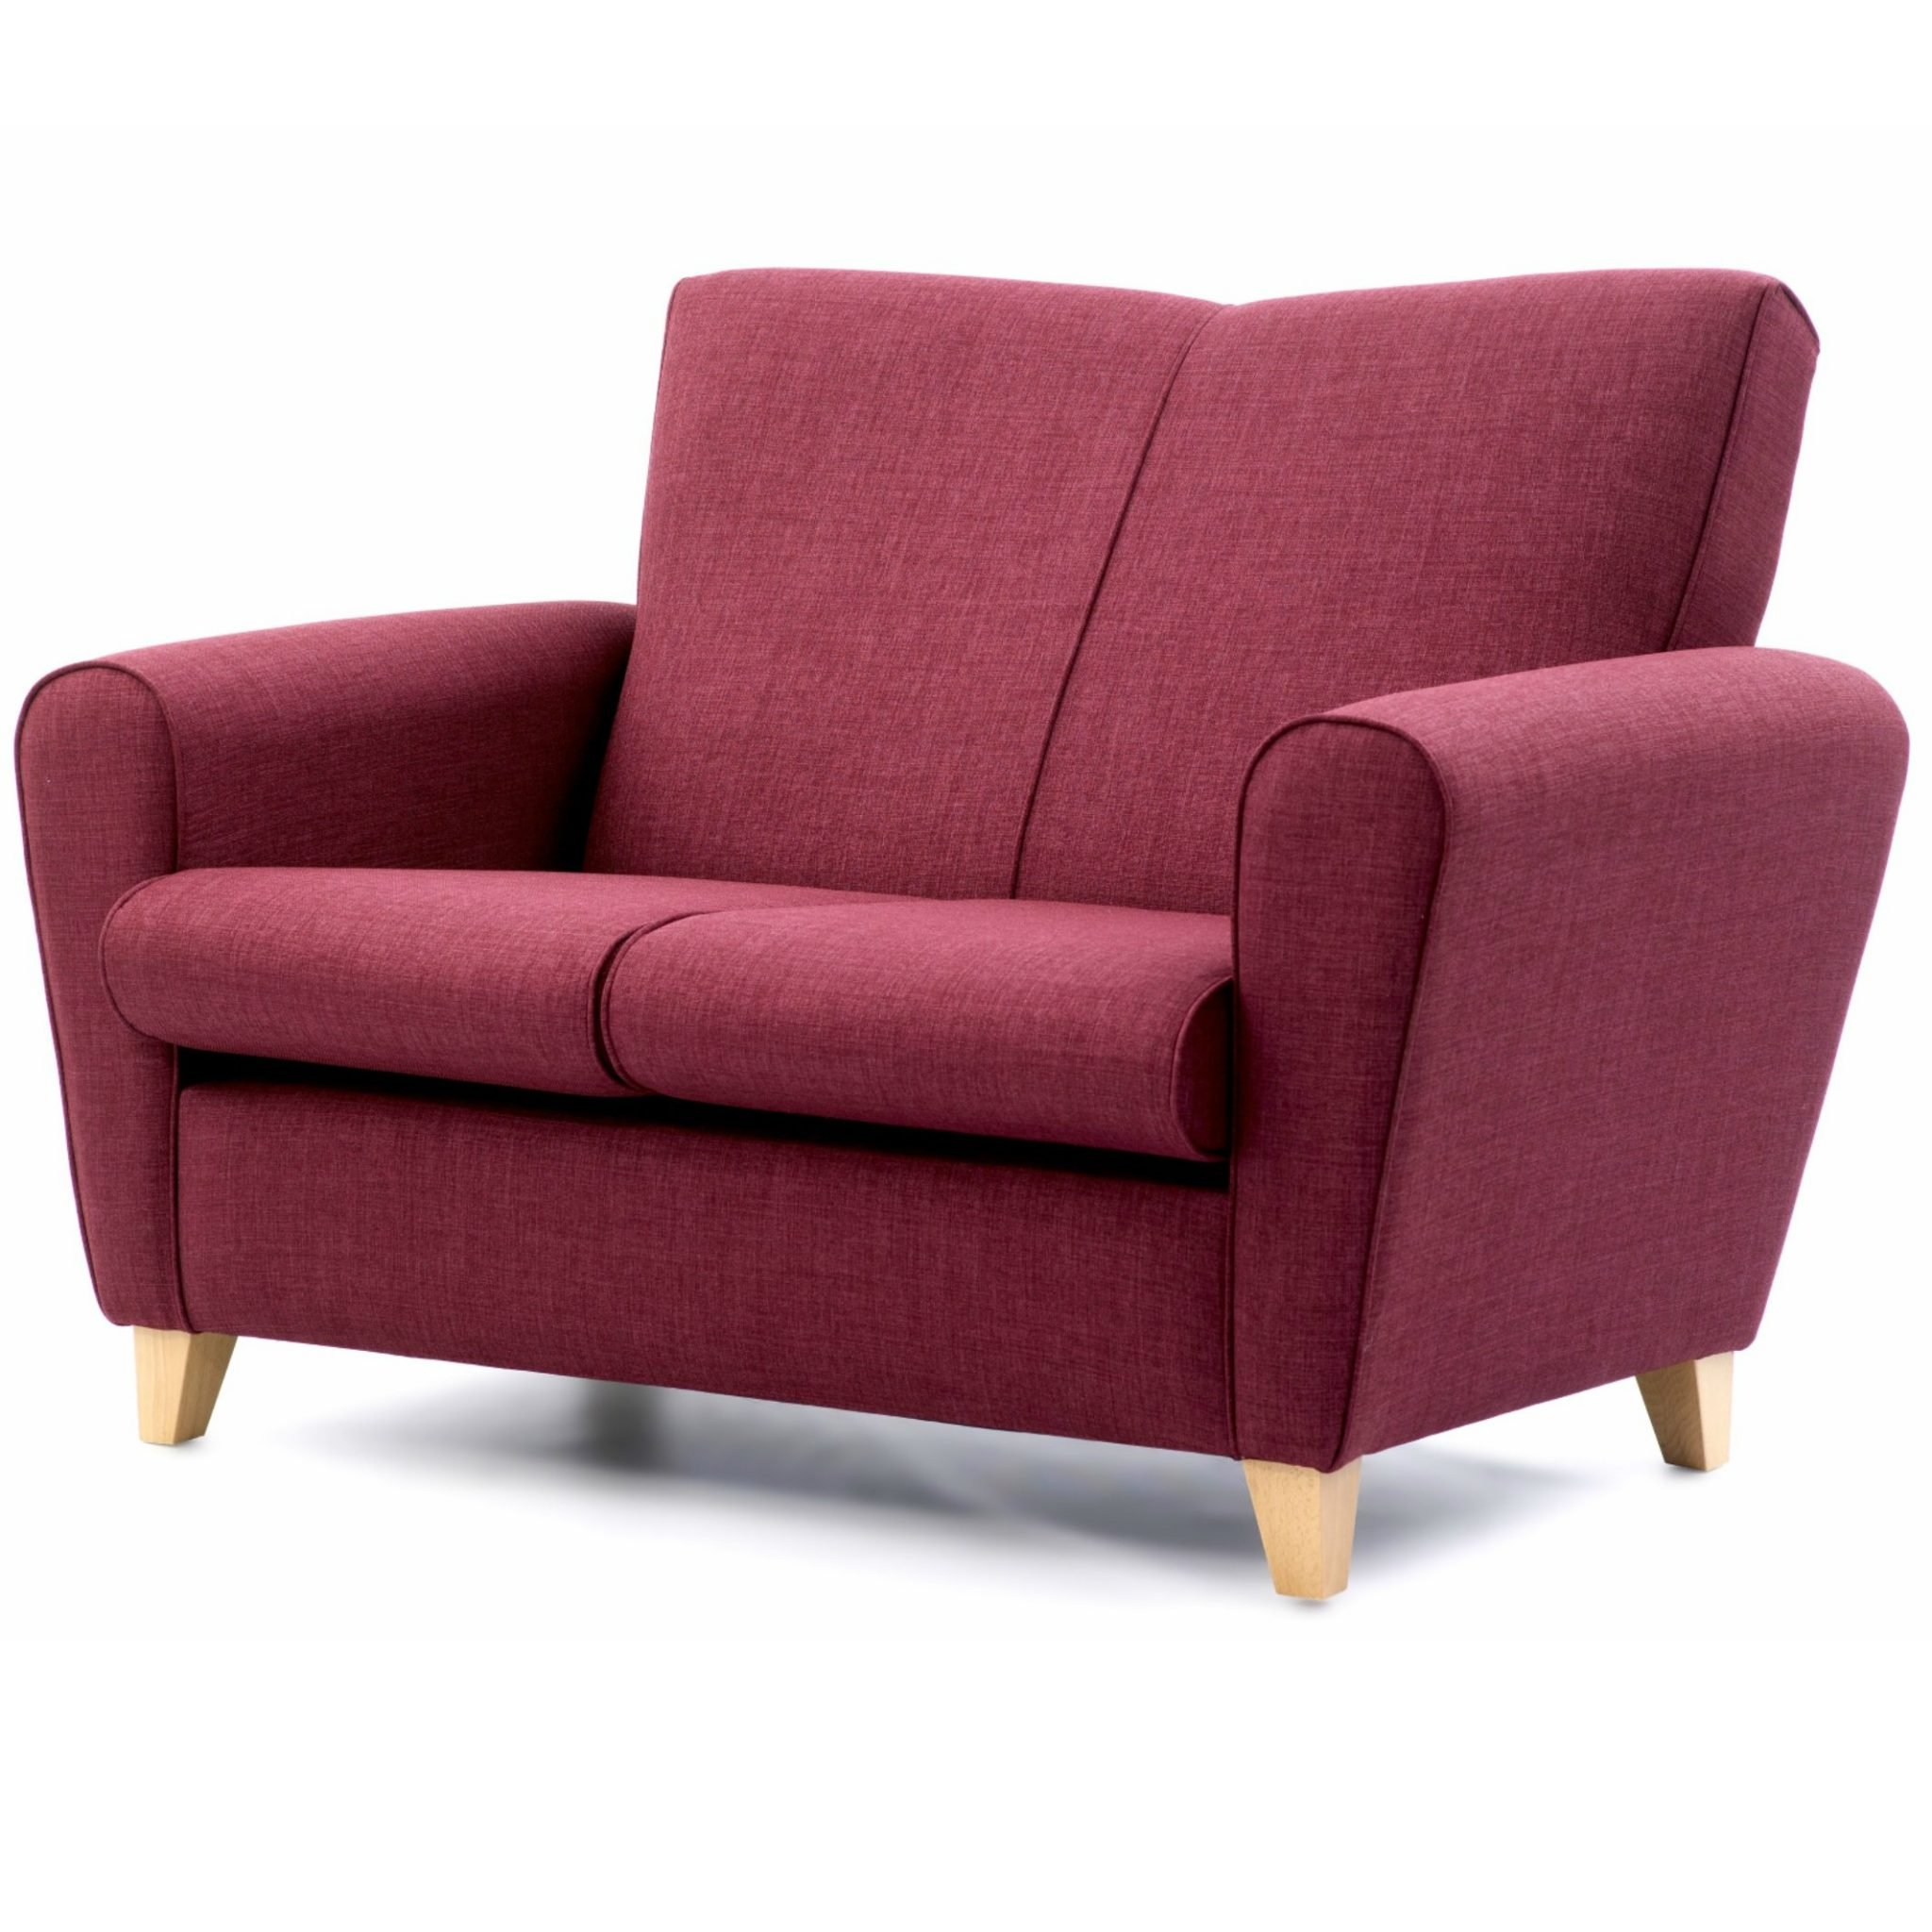 Savena 2 Seater Sofa Furncare